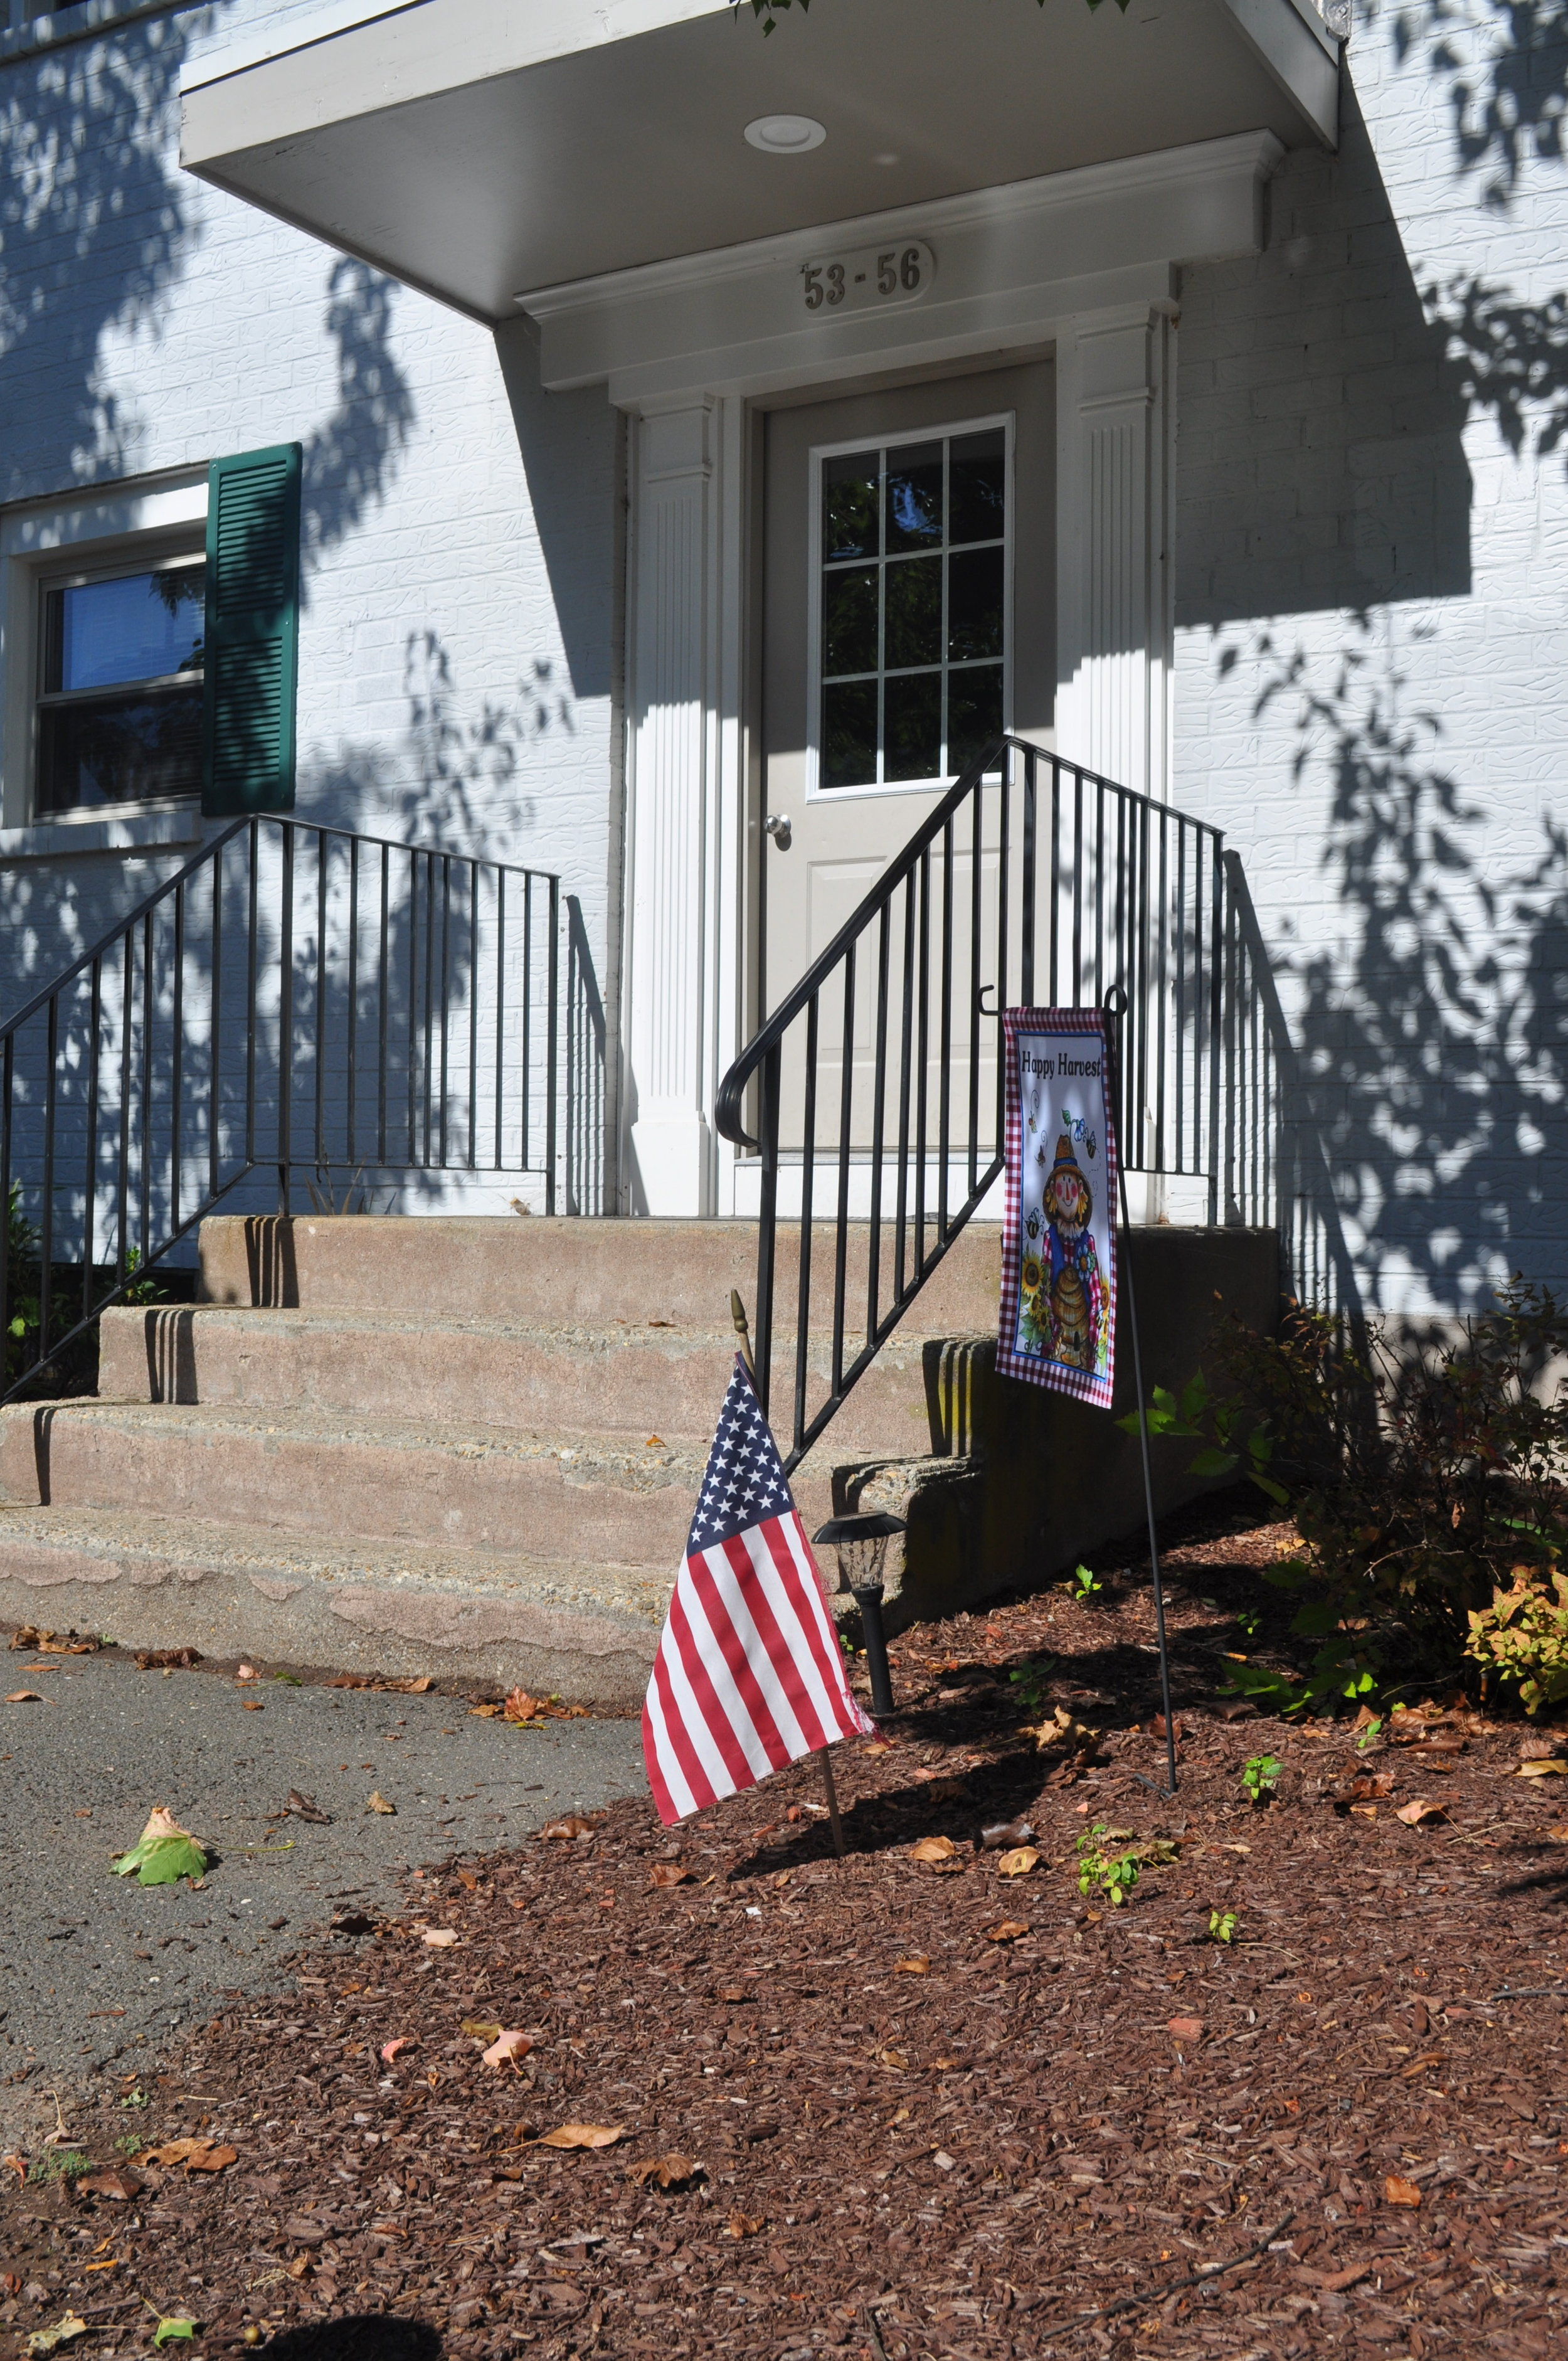 A white door with steps leading to it with a small American flag planted in the ground beside the steps.